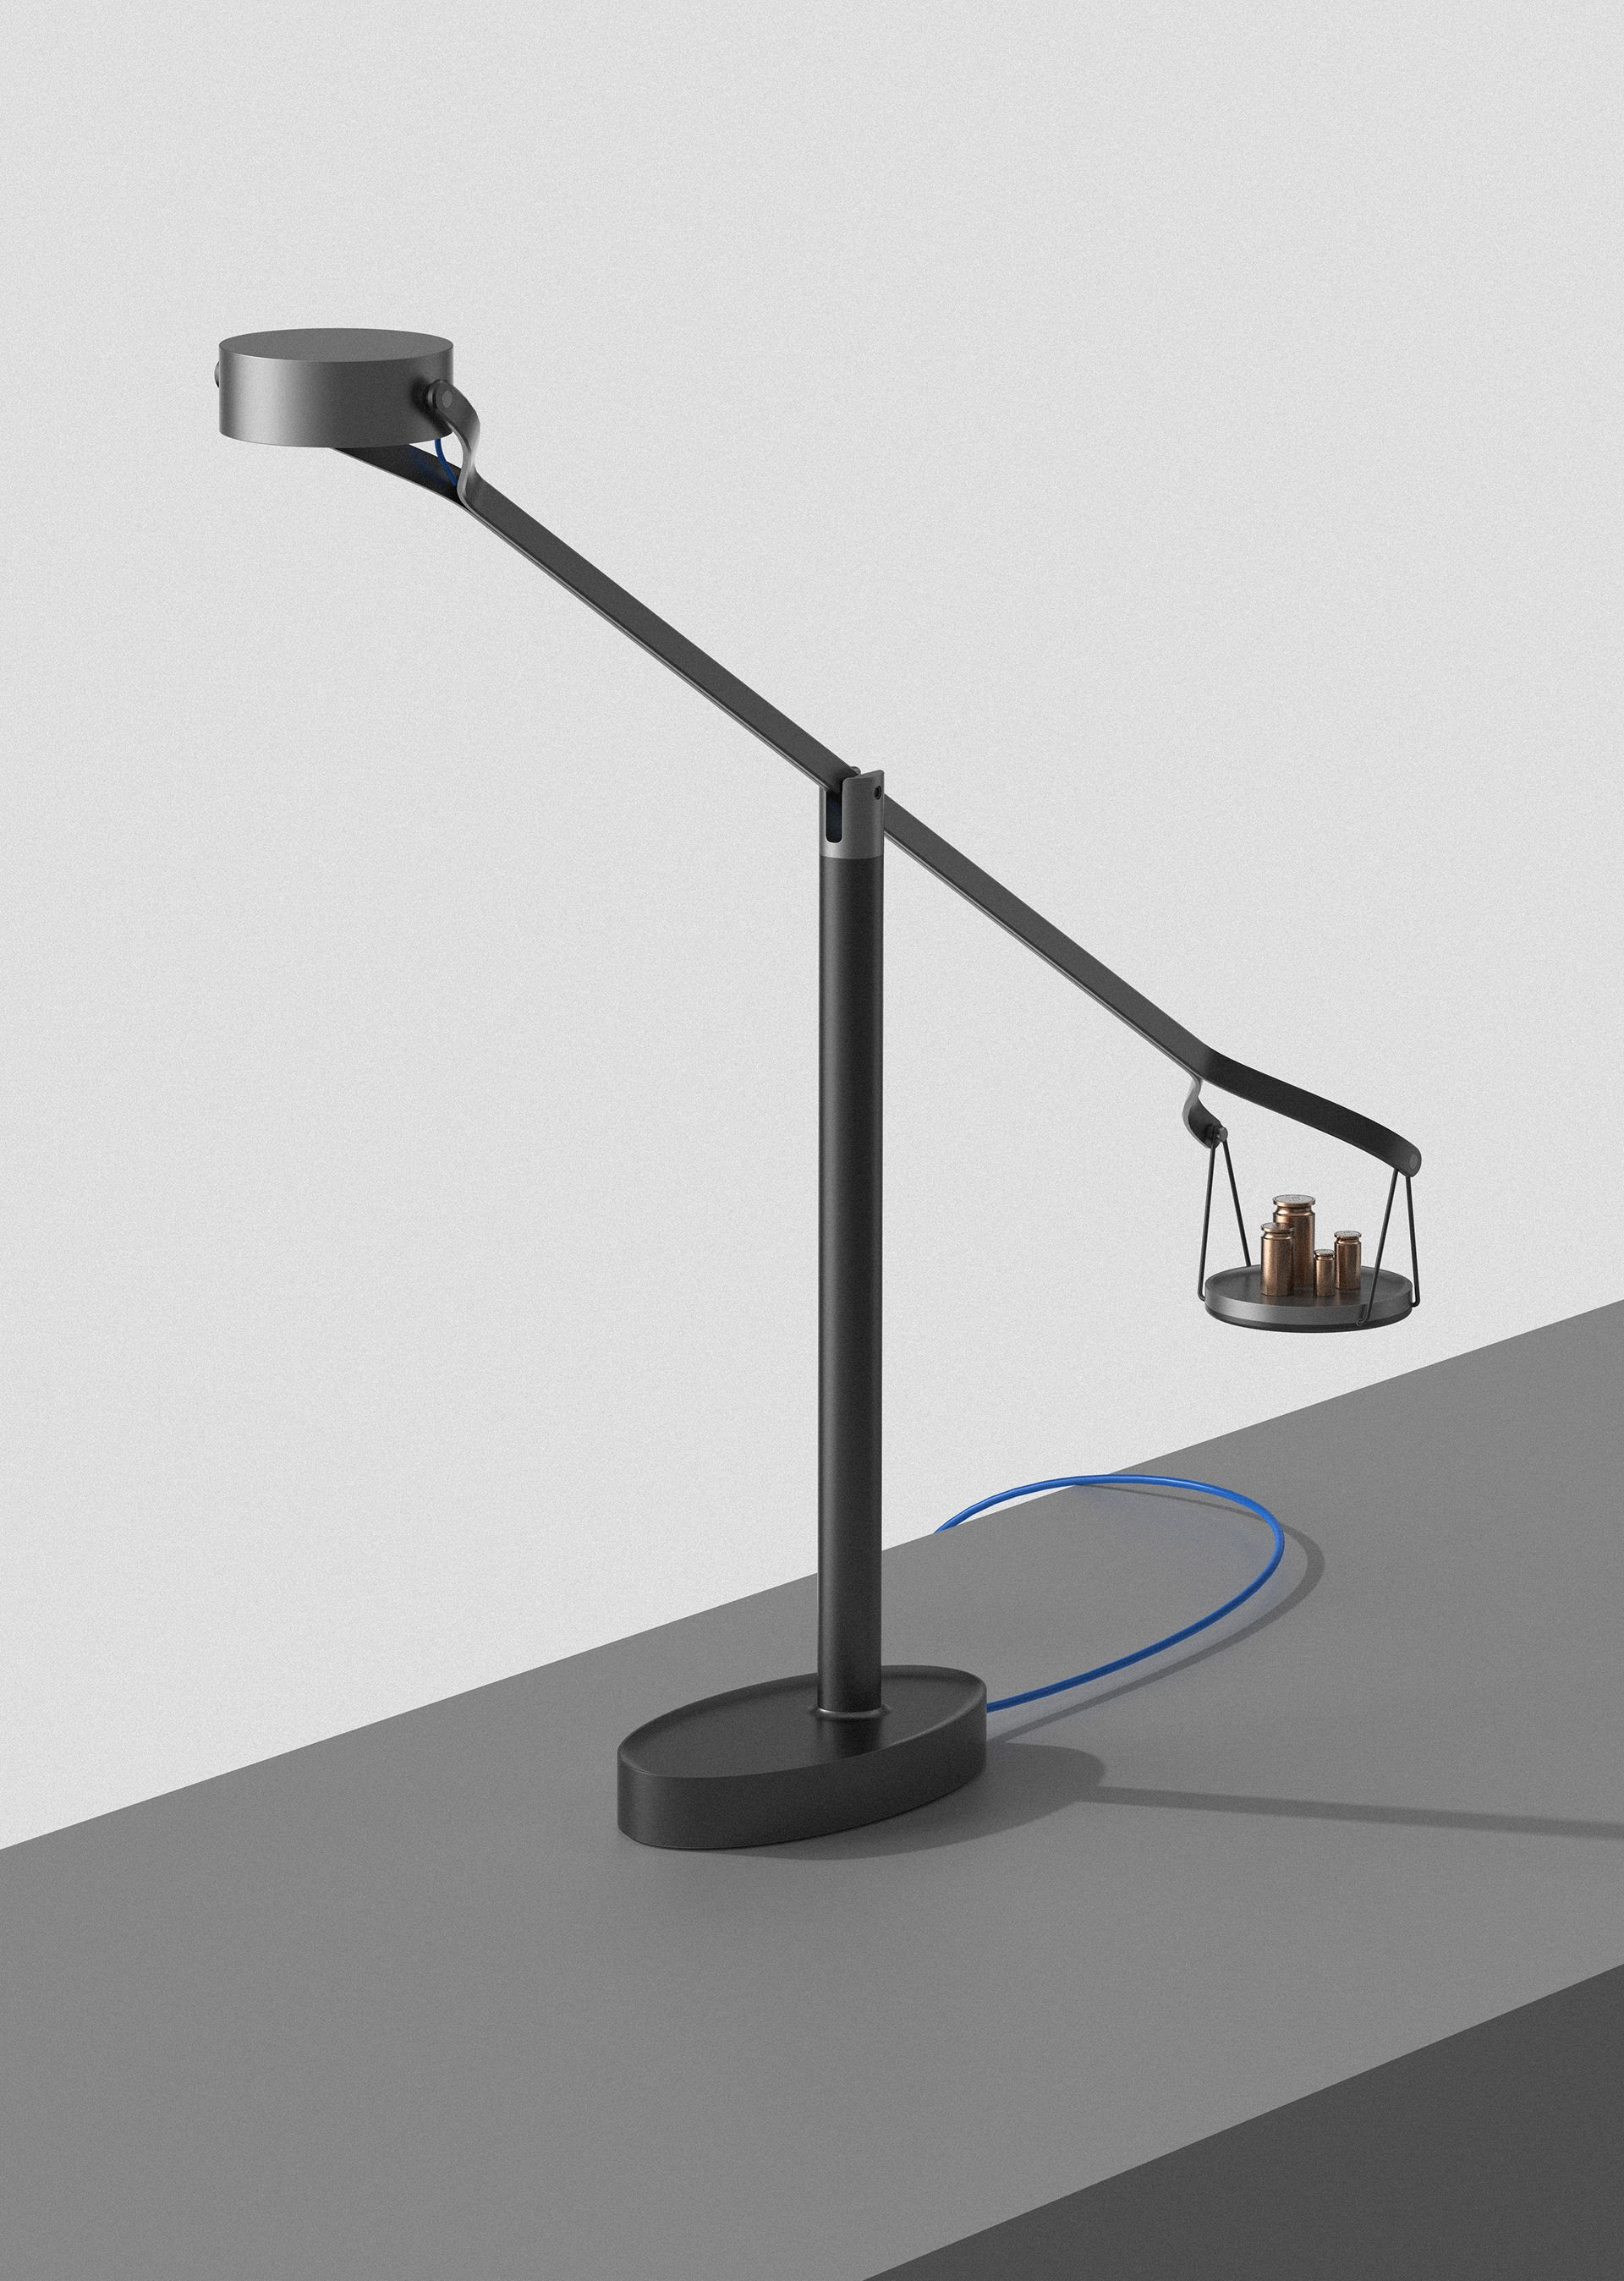 Weightify On Behance Lamp Lighting Desk Lamp